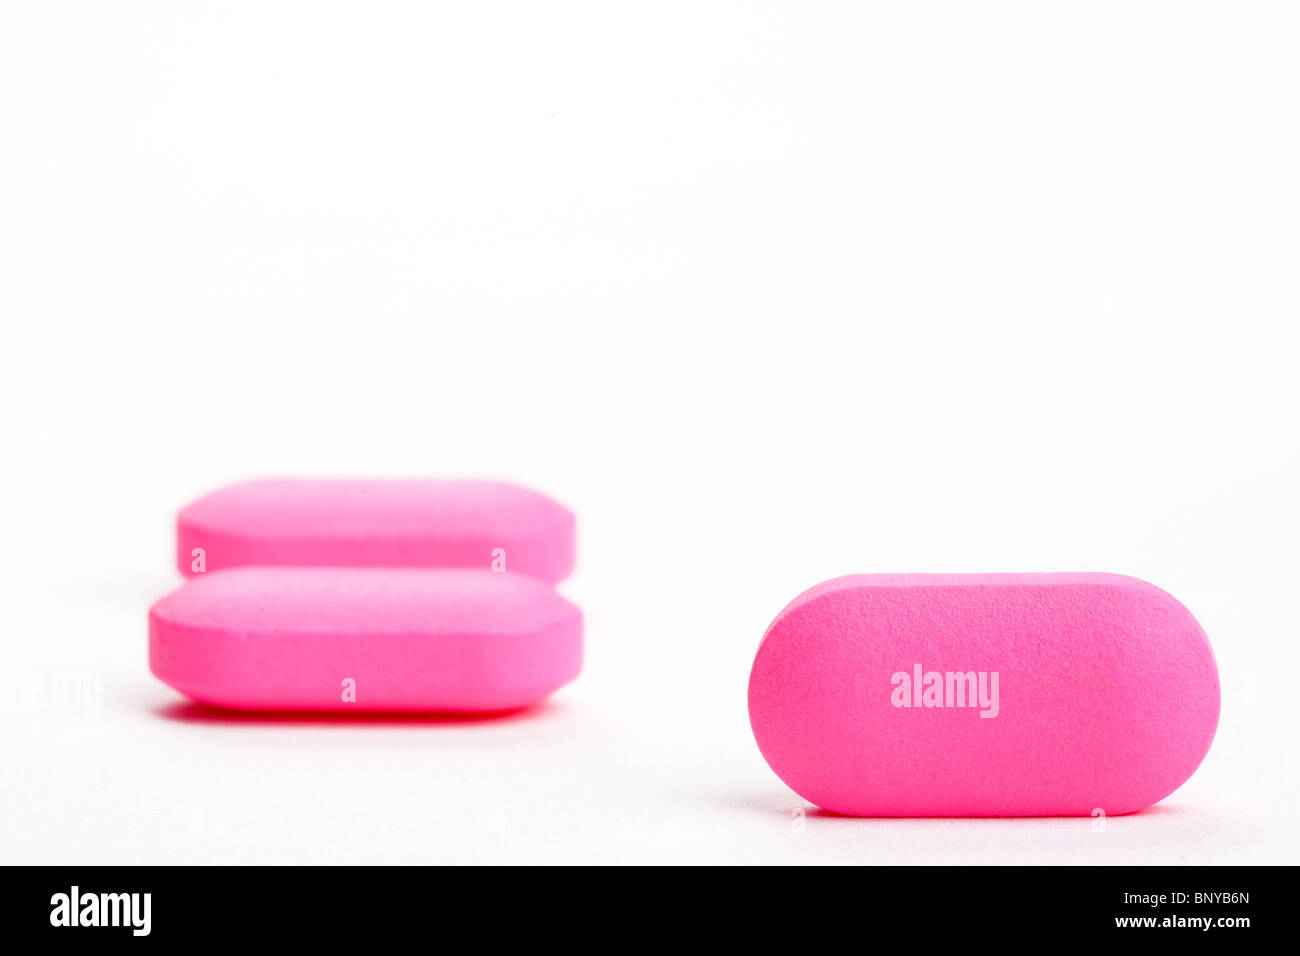 closeup of pink medical pills, isolated - Stock Image